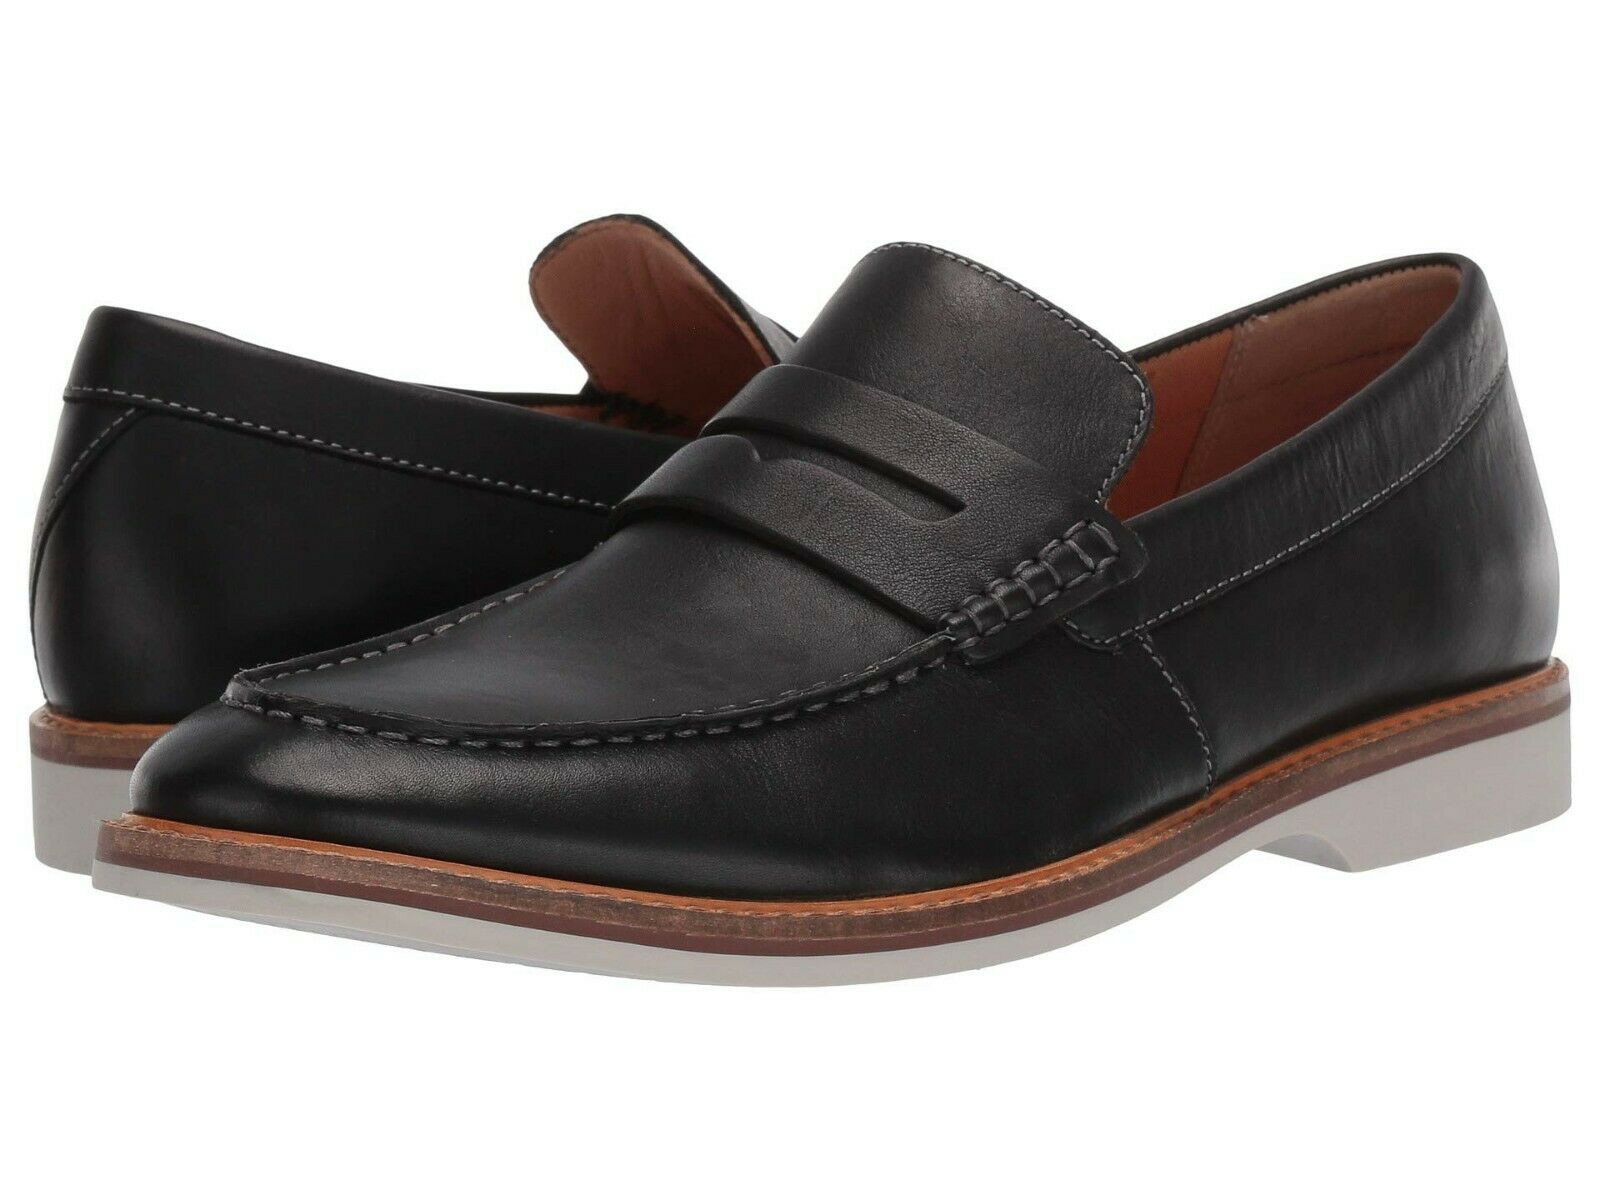 Men's shoes Clarks ATTICUS FREE Leather OrthoLite Penny Loafers 40241 BLACK